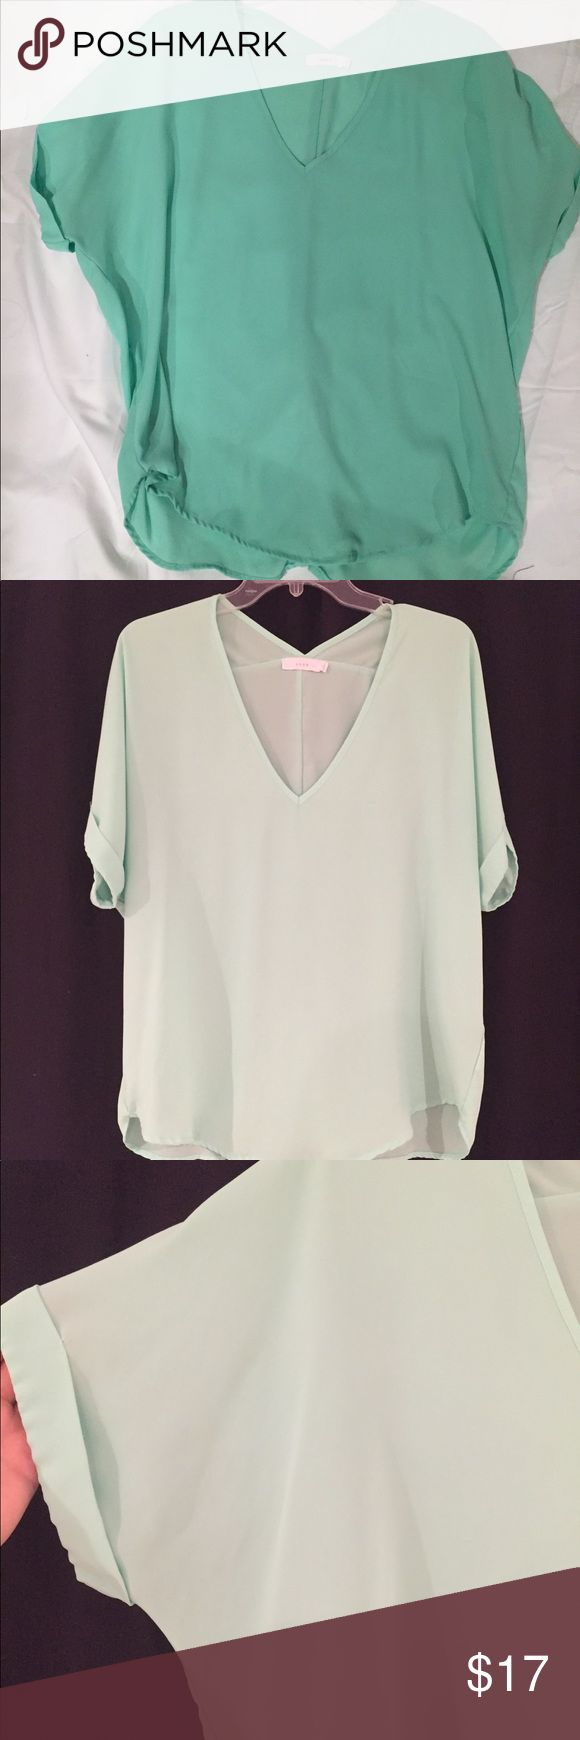 LUSH Mint Blouse Super cute mint colored short sleeve flowy top. That really is the same top- the picture just comes through horrible against the black! So pretty and the v neck details are adorable! Lush Tops Blouses